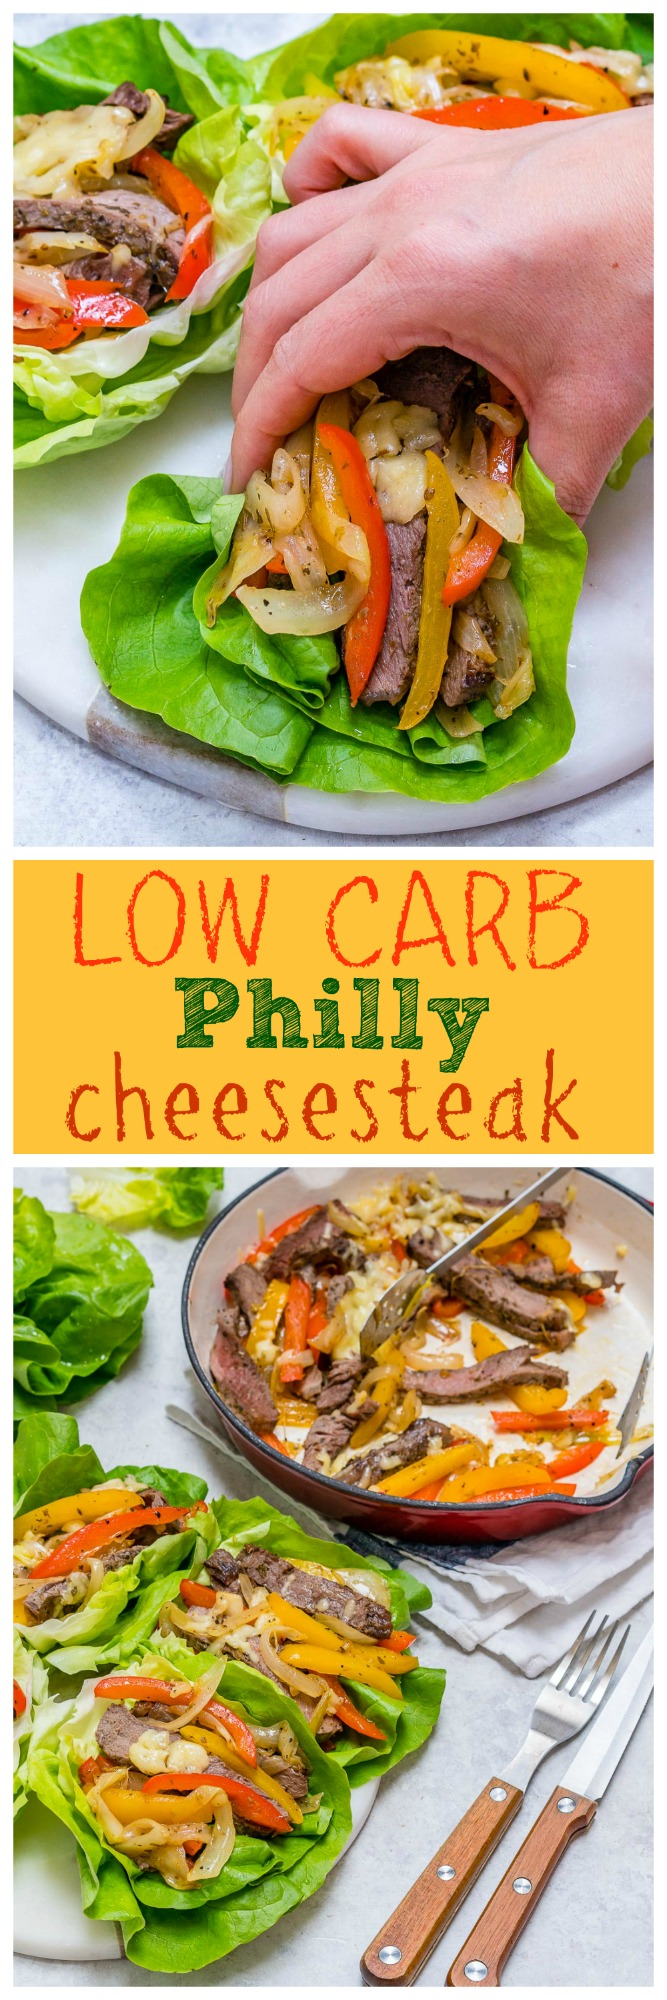 Healthy Low Carb Philly Cheesesteaks